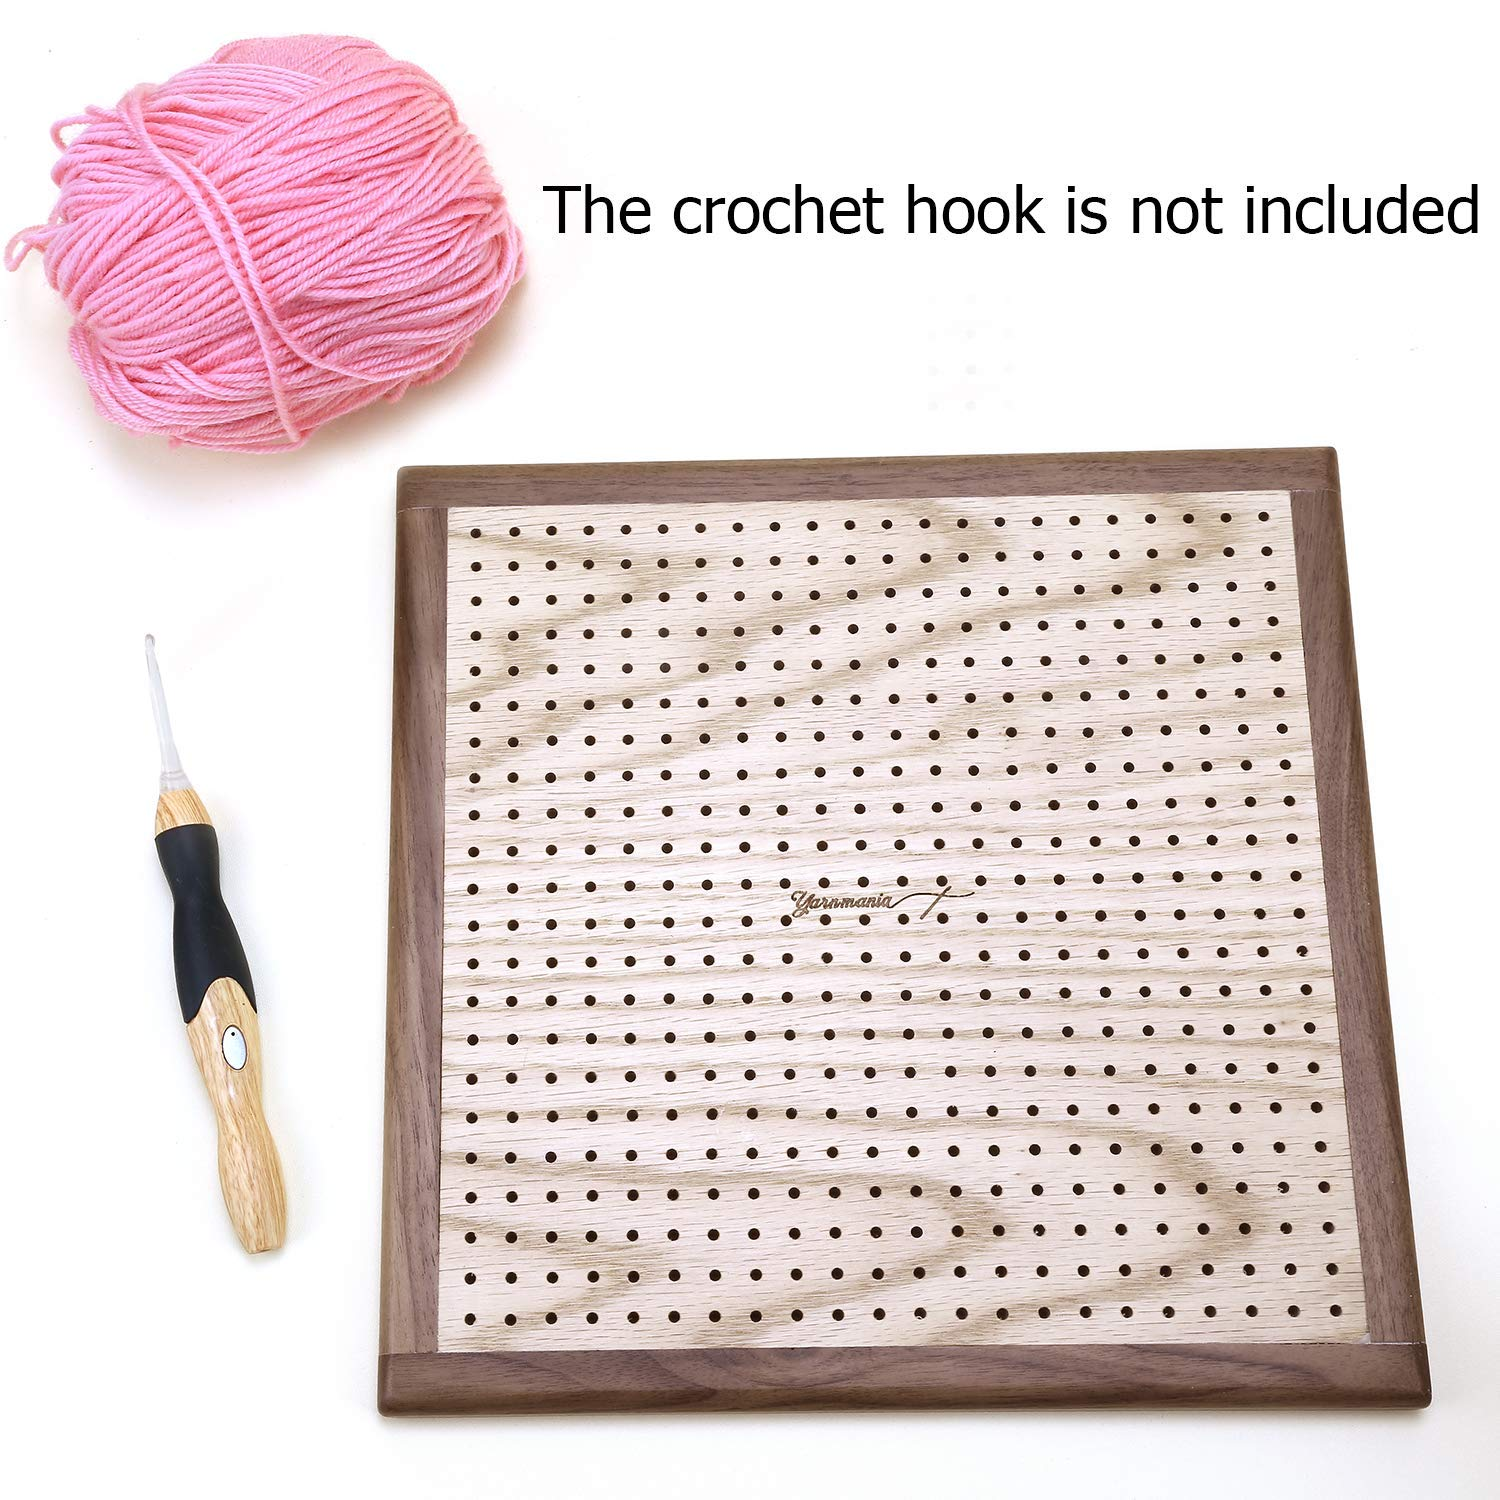 Yarn Mania - Premium Blocking Boards for Knitting with Grids - Handcrafted Wood Crochet Blocking Board with 20 Stainless Steel Pins (9 inches) by Yarn Mania (Image #7)